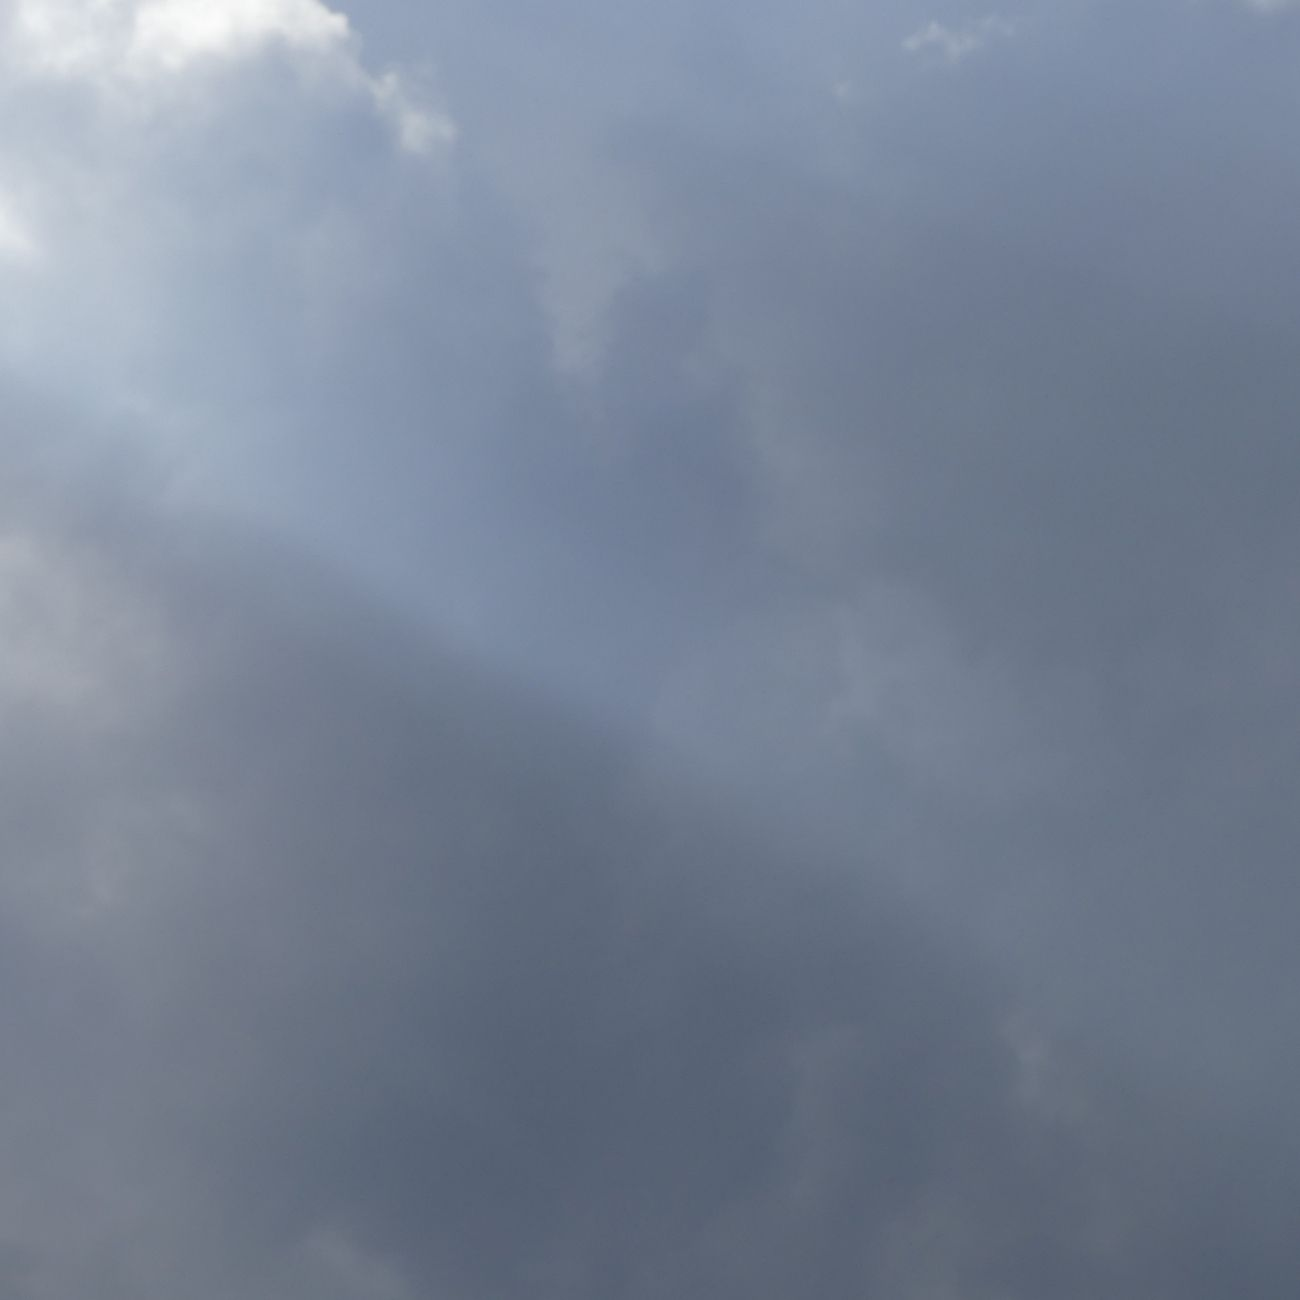 Taken 08/19/2020 from work parking lot. Practice photos with cloudscapes during an entire month of cloud coverage.